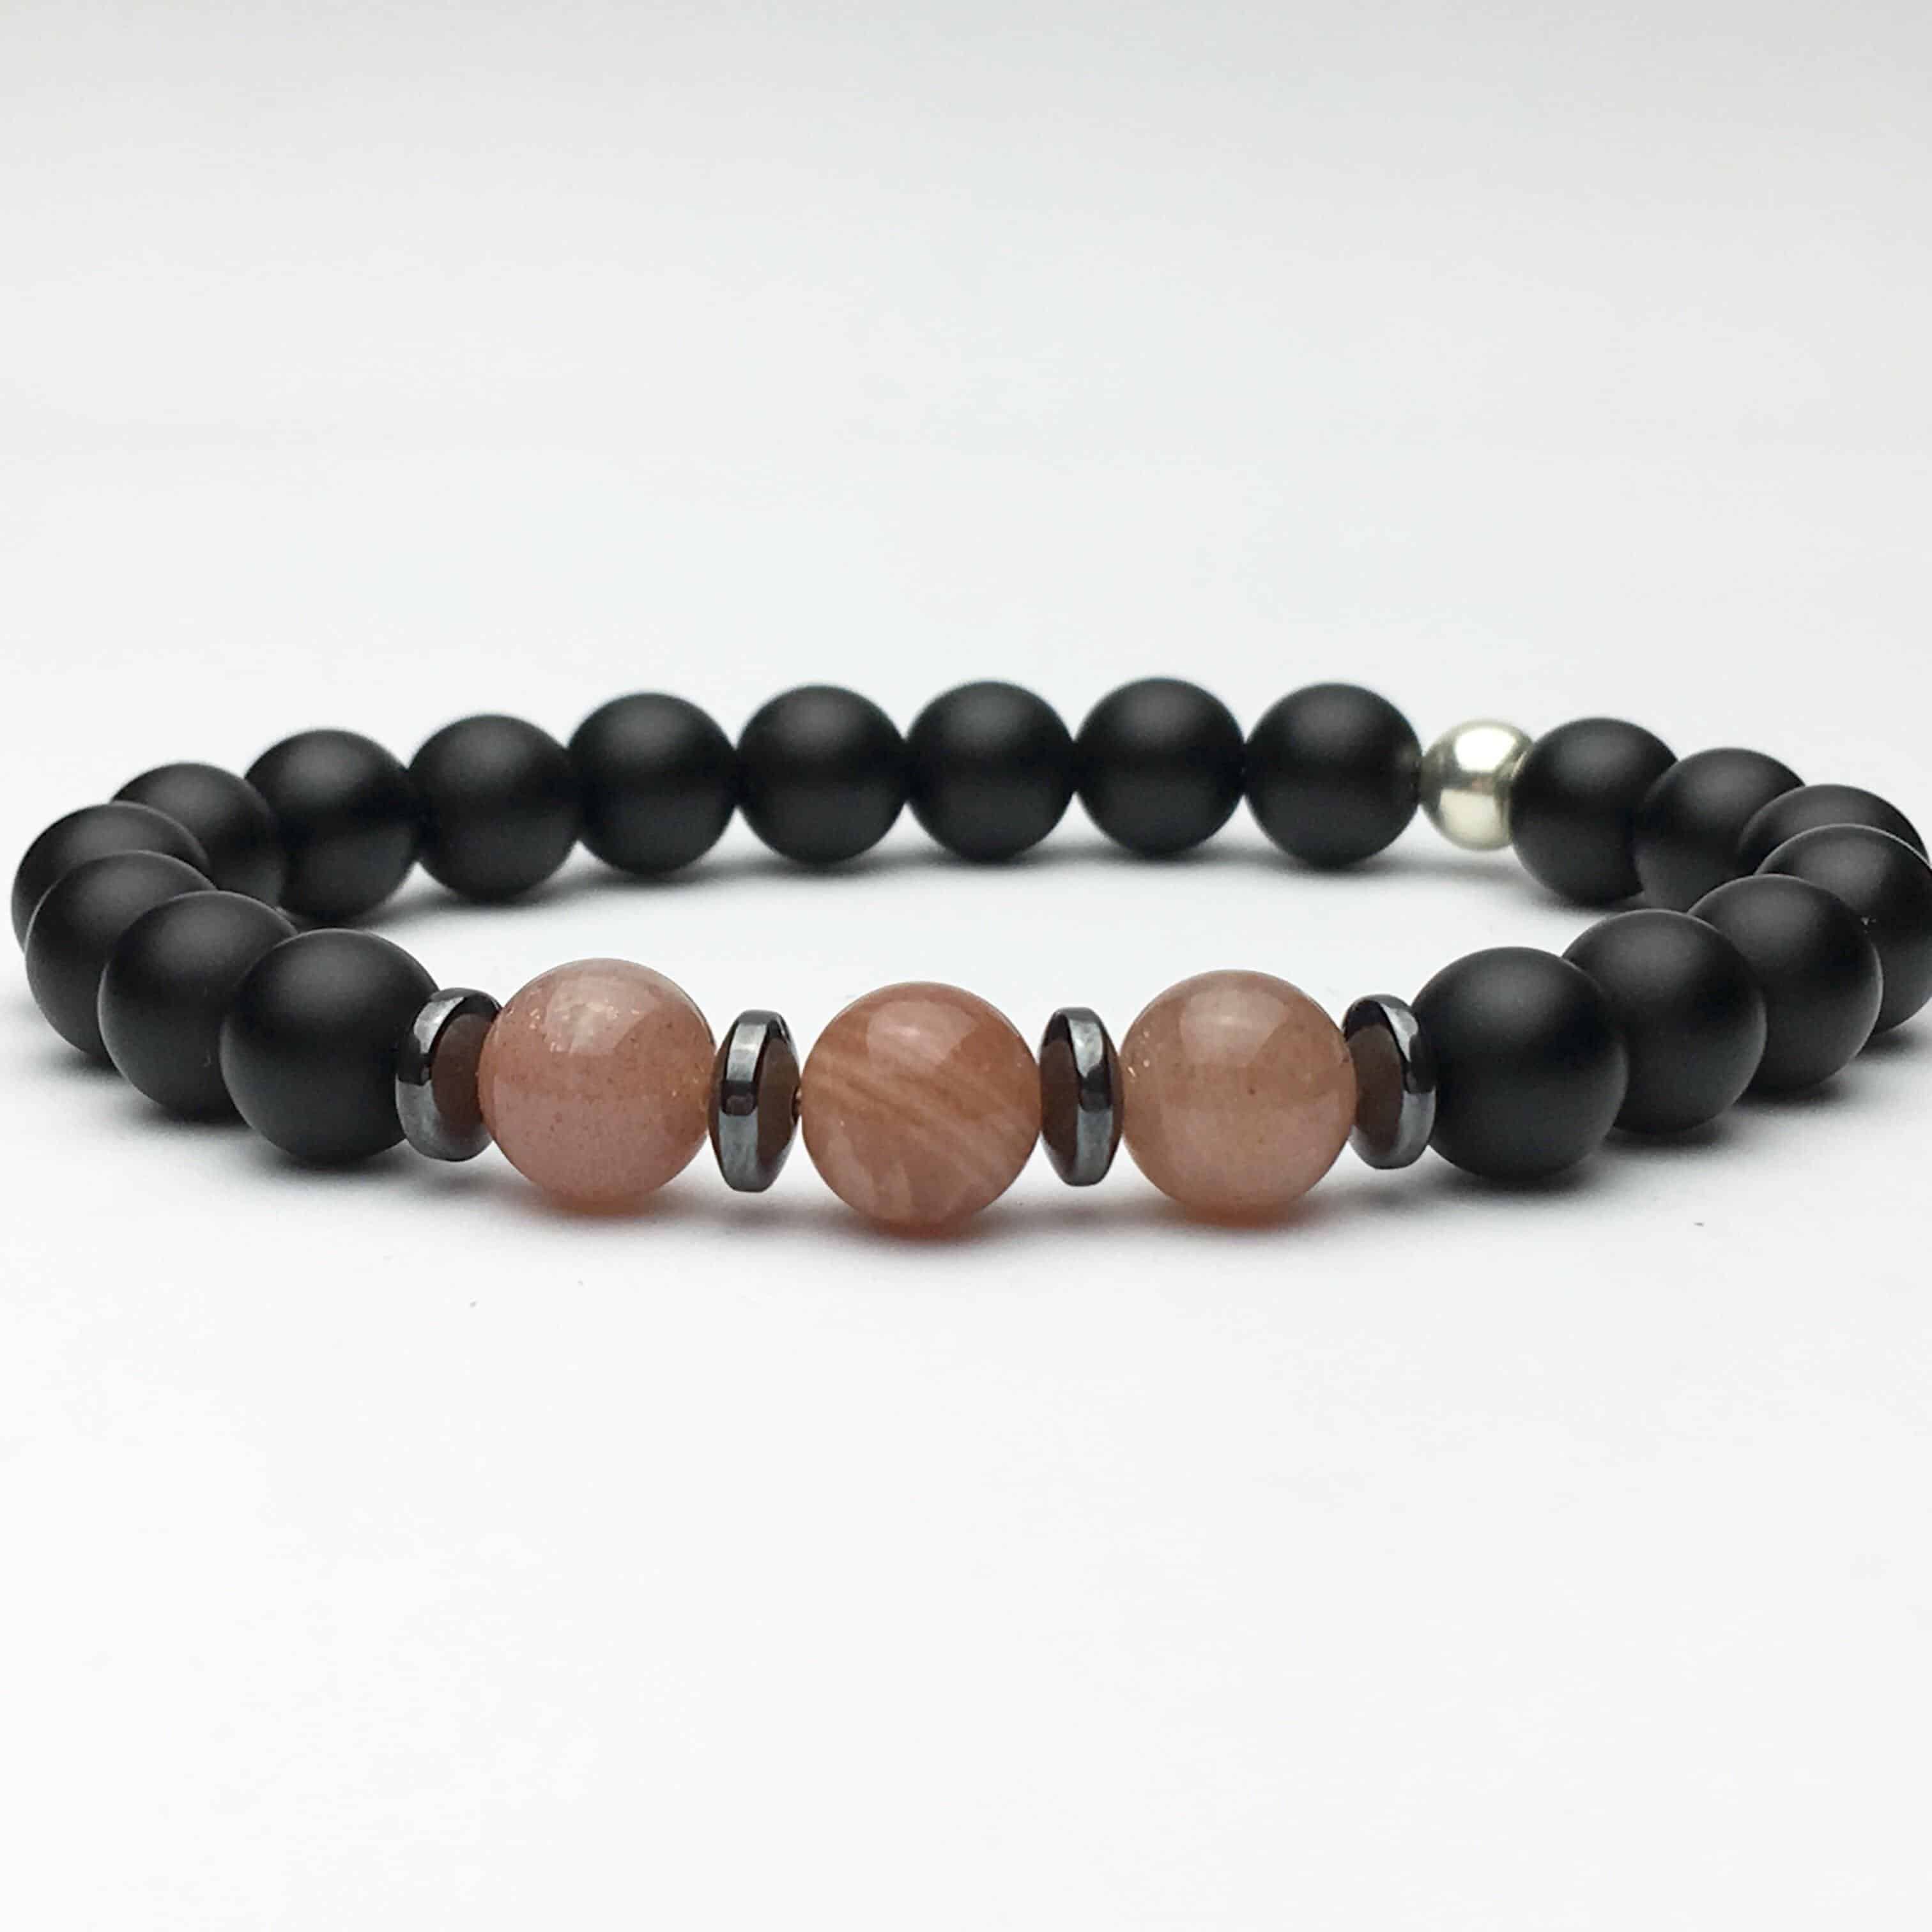 Onyx and Sunstone Stylish Bracelet